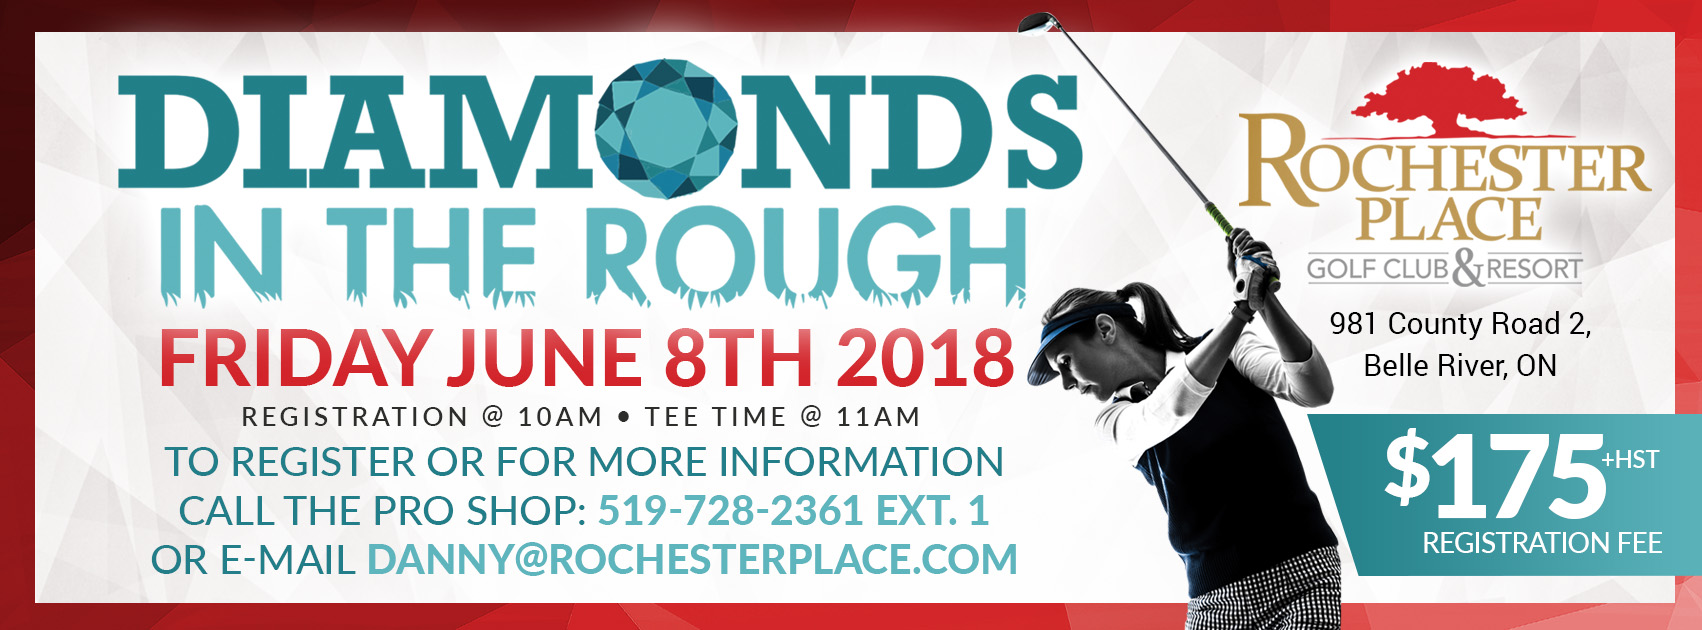 Diamonds In The Rough. Friday June 8th 2018. Registration @ 10am, tee time @ 11am. $175 + HST registration fee. To register or for more information call the pro shop: 519-728-2361 ext. 1 or email danny@rochesterplace.com